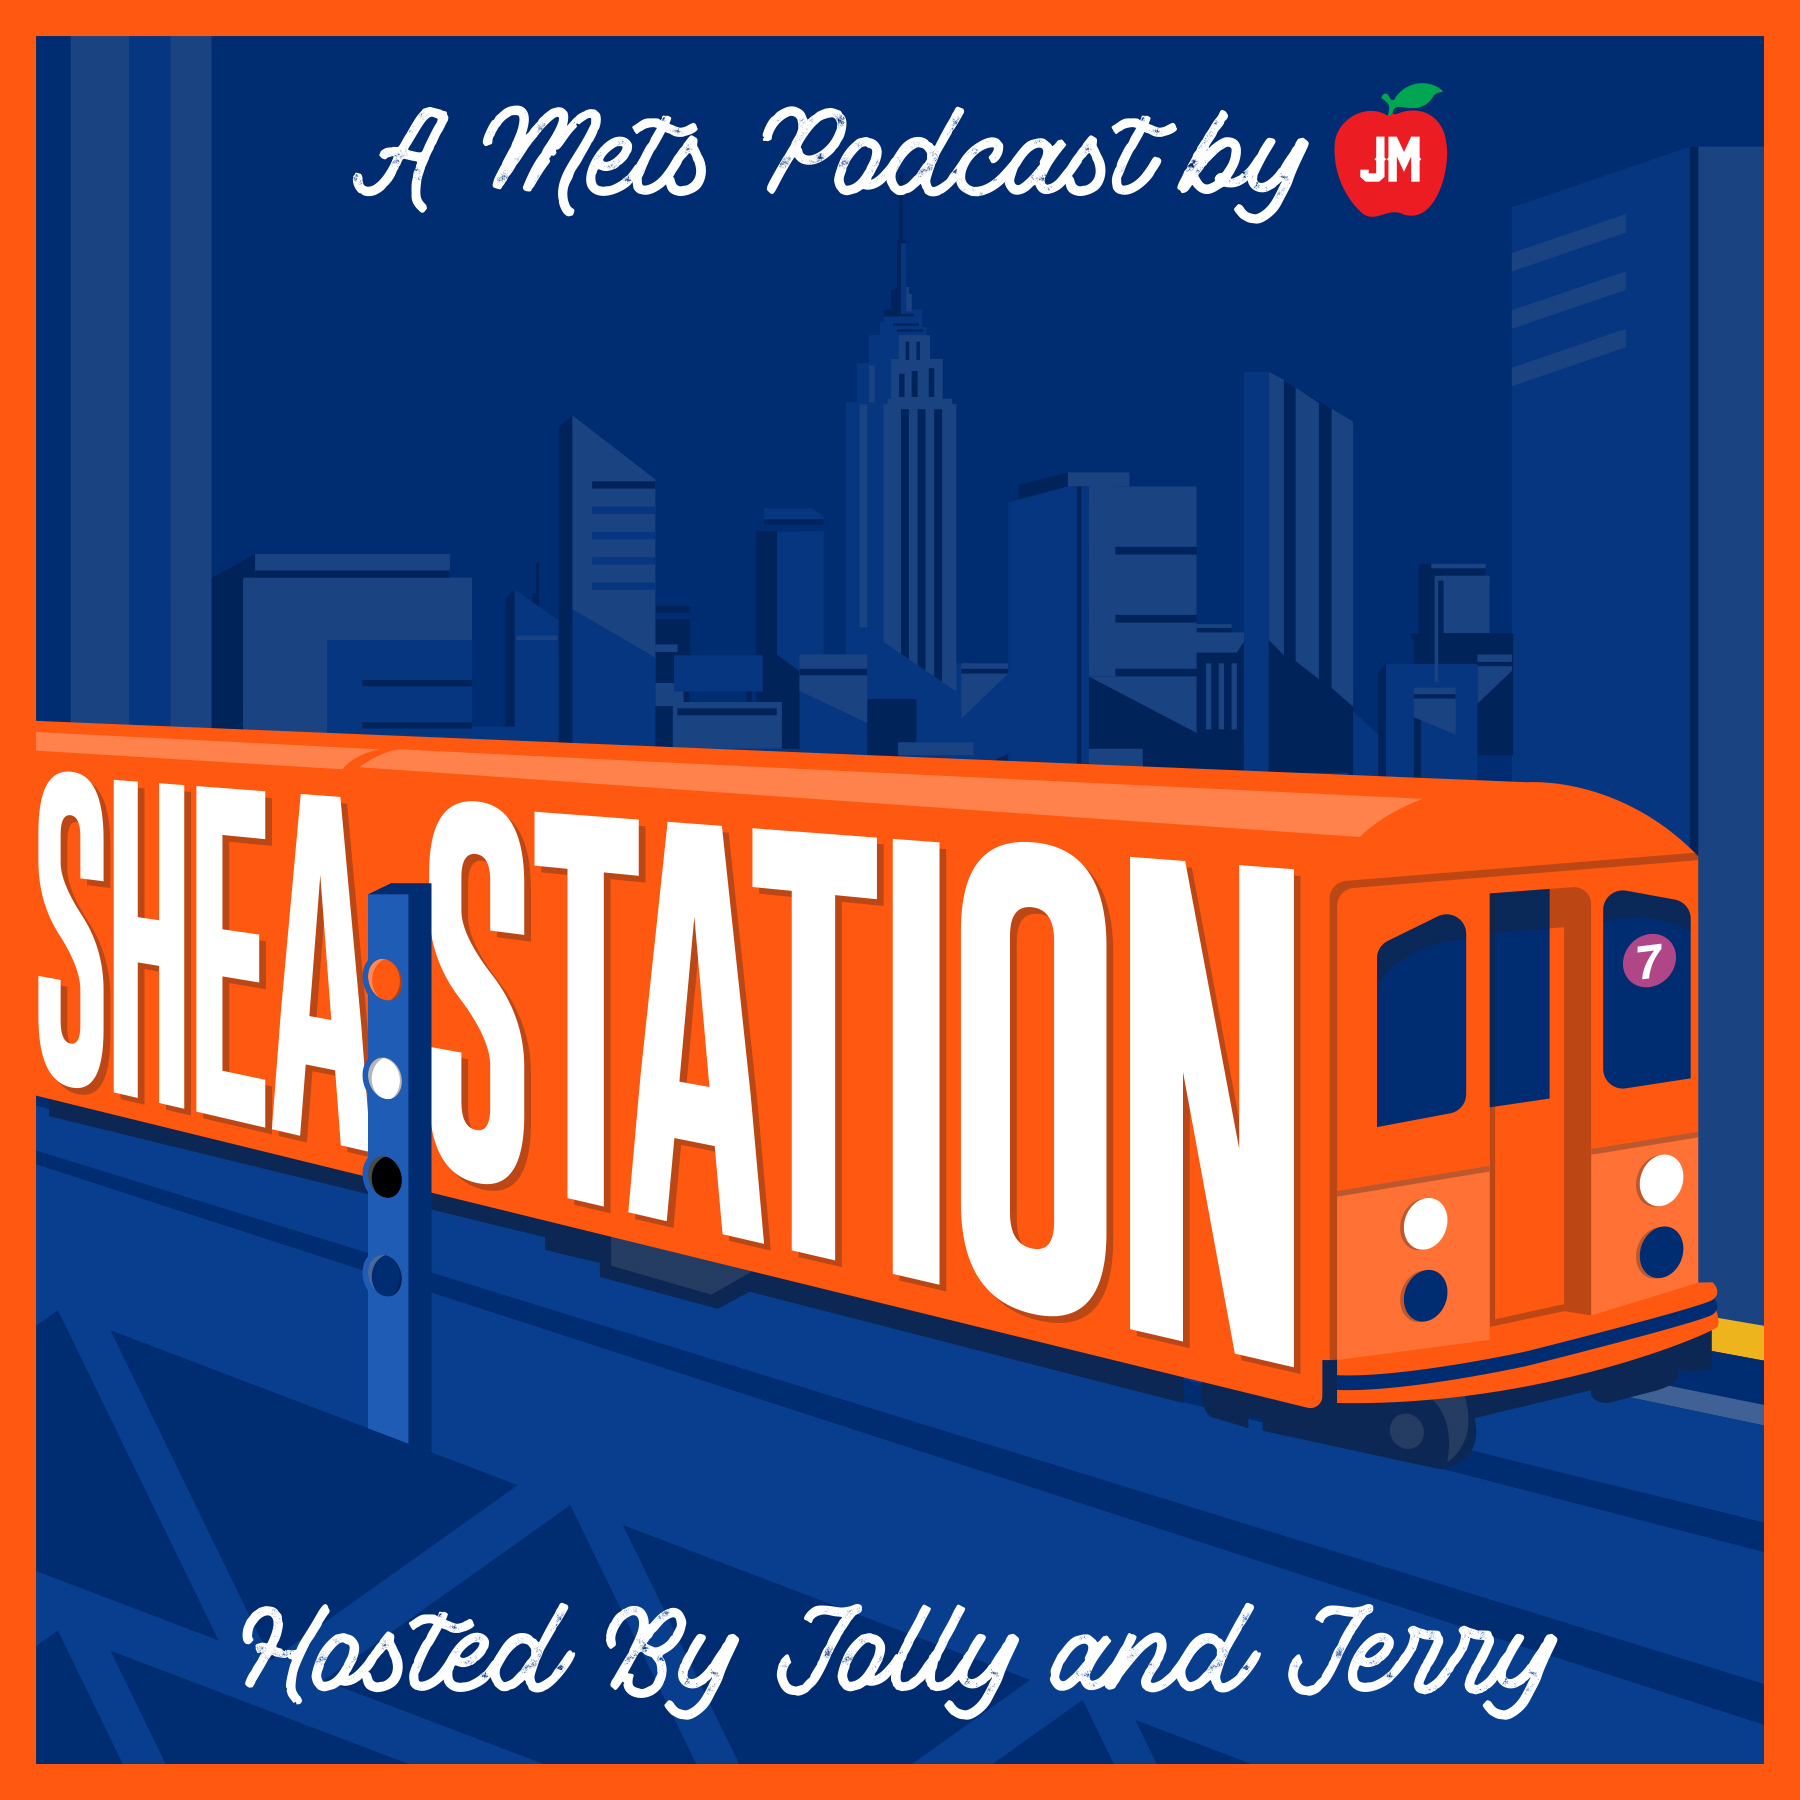 Shea Station (Mets Podcast)